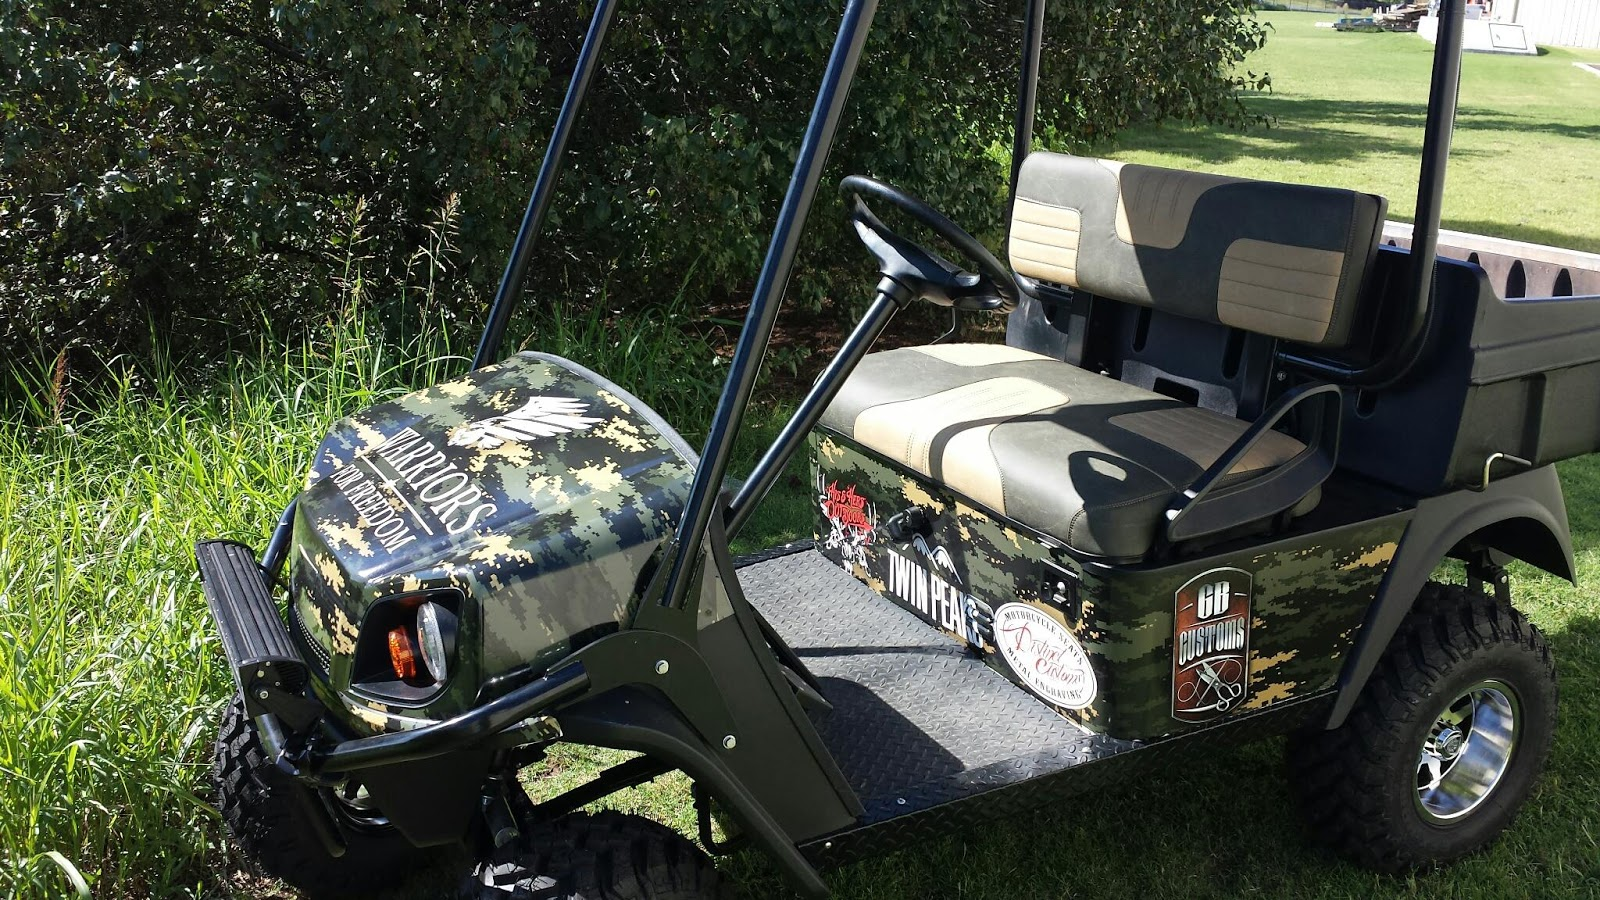 Distinct Customs: Warriors for Freedom golf cart. Sponsored by His on golf trolley, golf games, golf hitting nets, golf machine, golf buggy, golf girls, golf players, golf handicap, golf cartoons, golf card, golf words, golf tools, golf accessories,